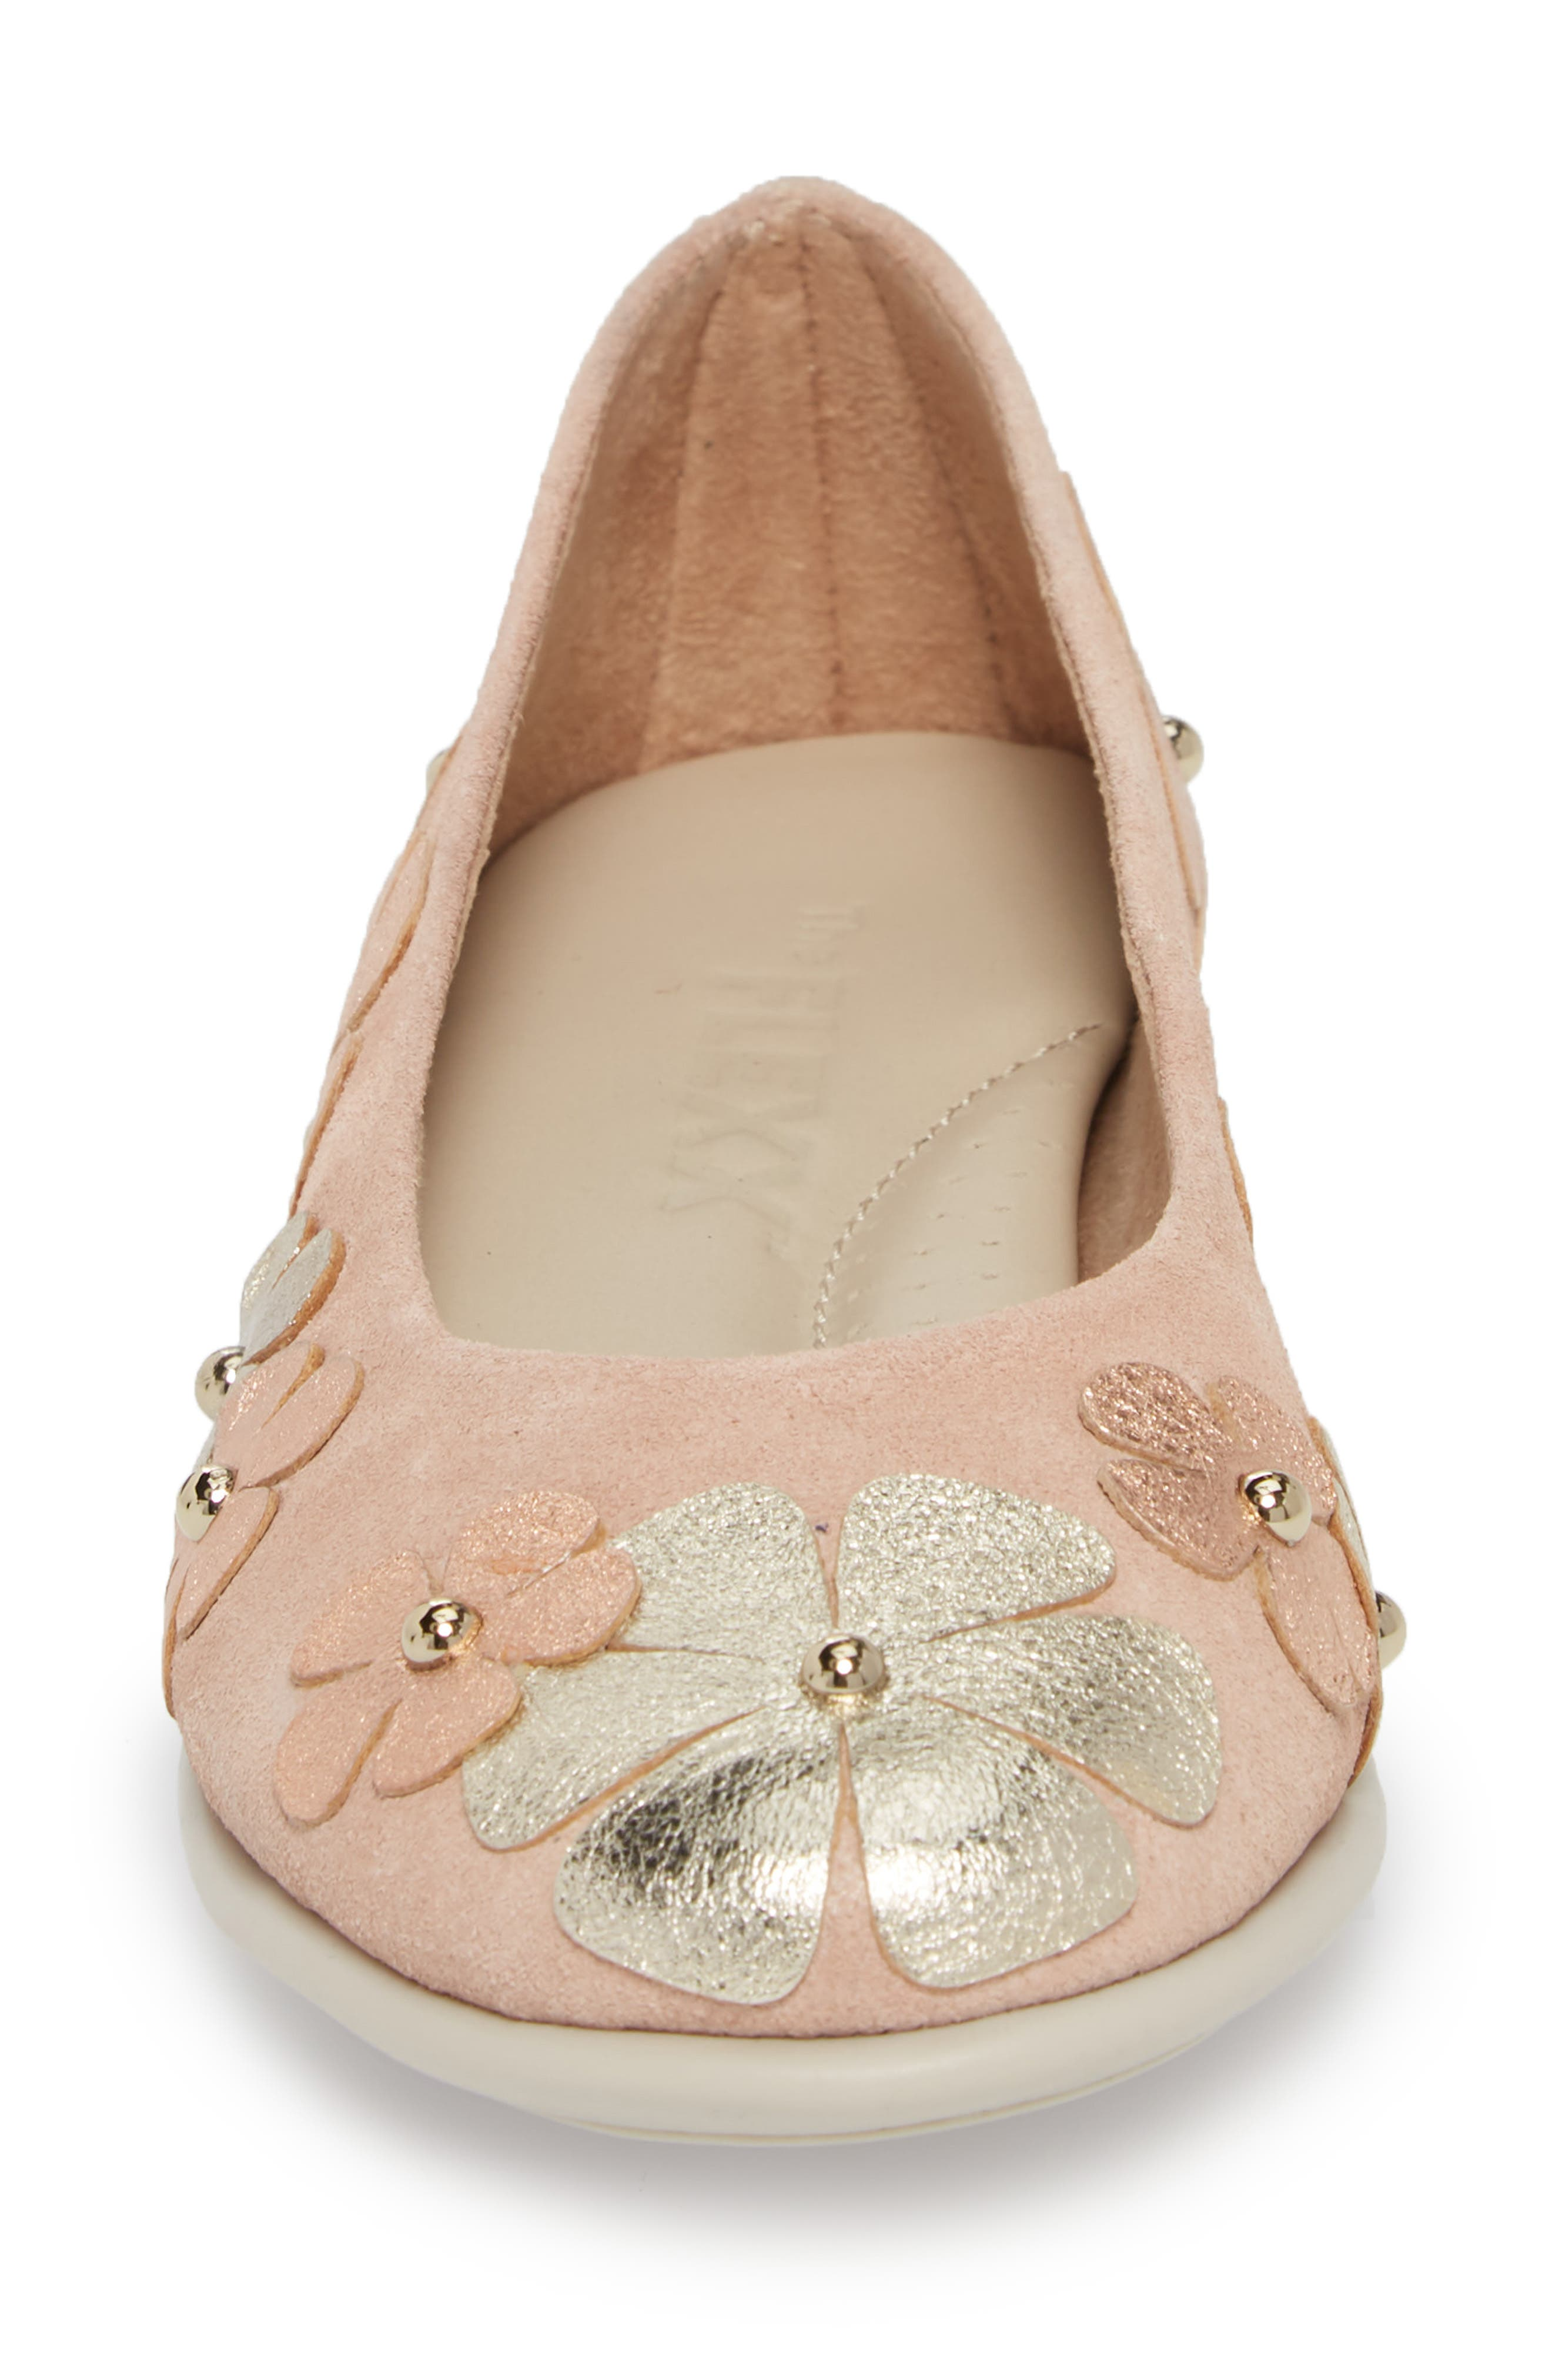 Miss Hippie Ballerina Flat,                             Alternate thumbnail 4, color,                             ROSE GOLD LEATHER